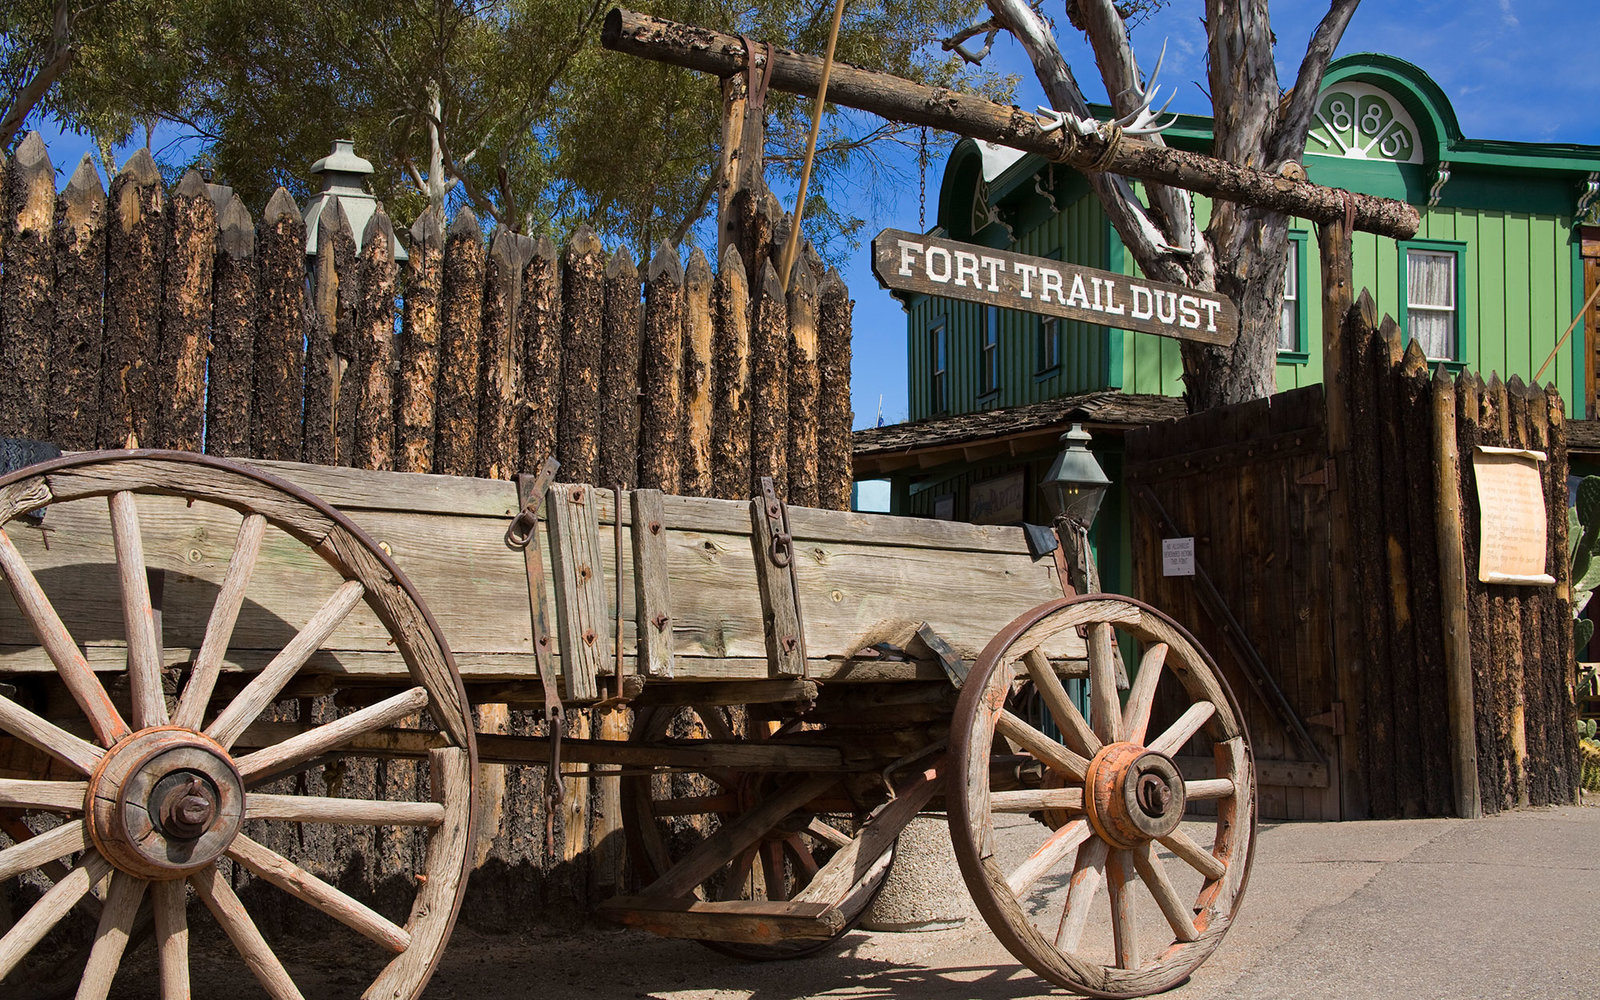 Wagon, Trail Dust Frontier Town.